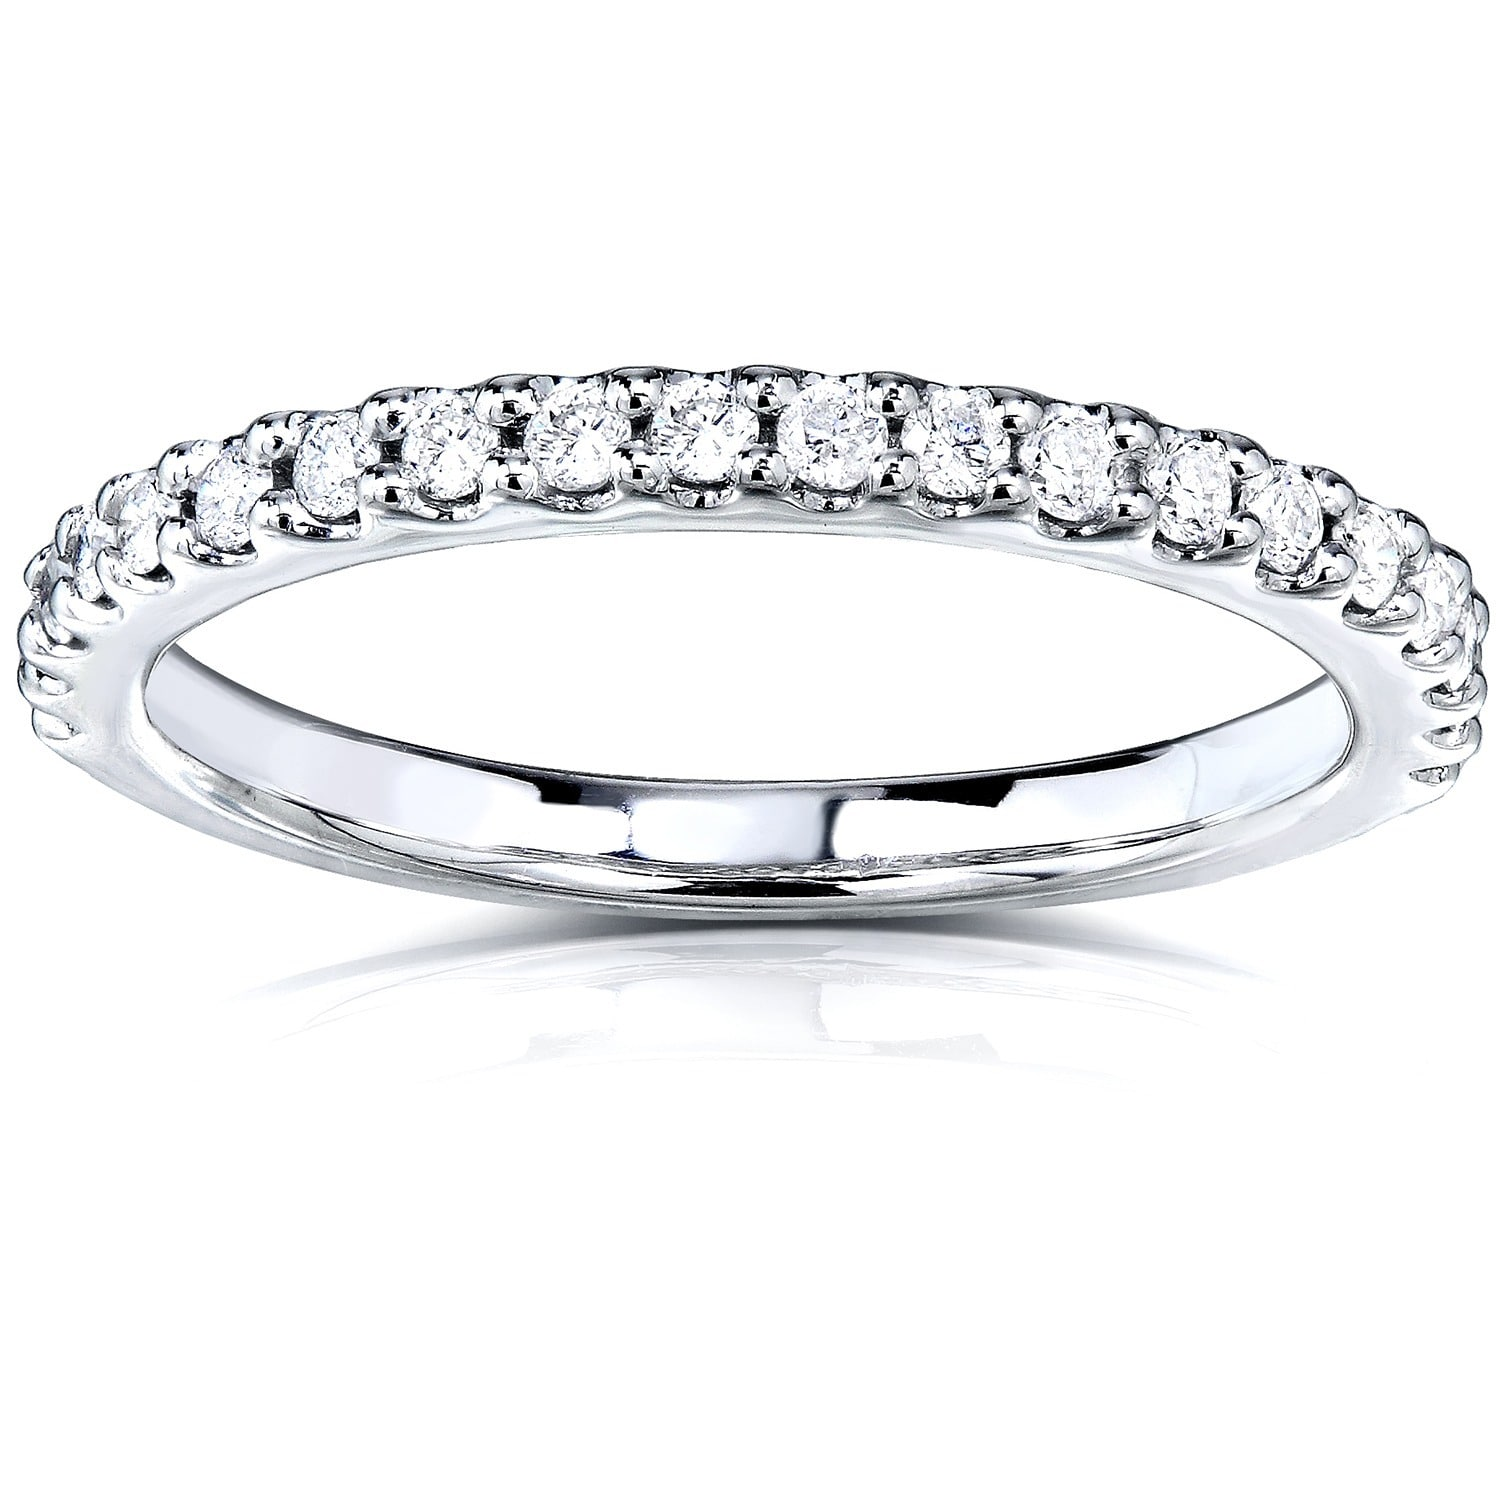 platinum band wedding bands diamonds deco antique cut single in diamond home art product eternity